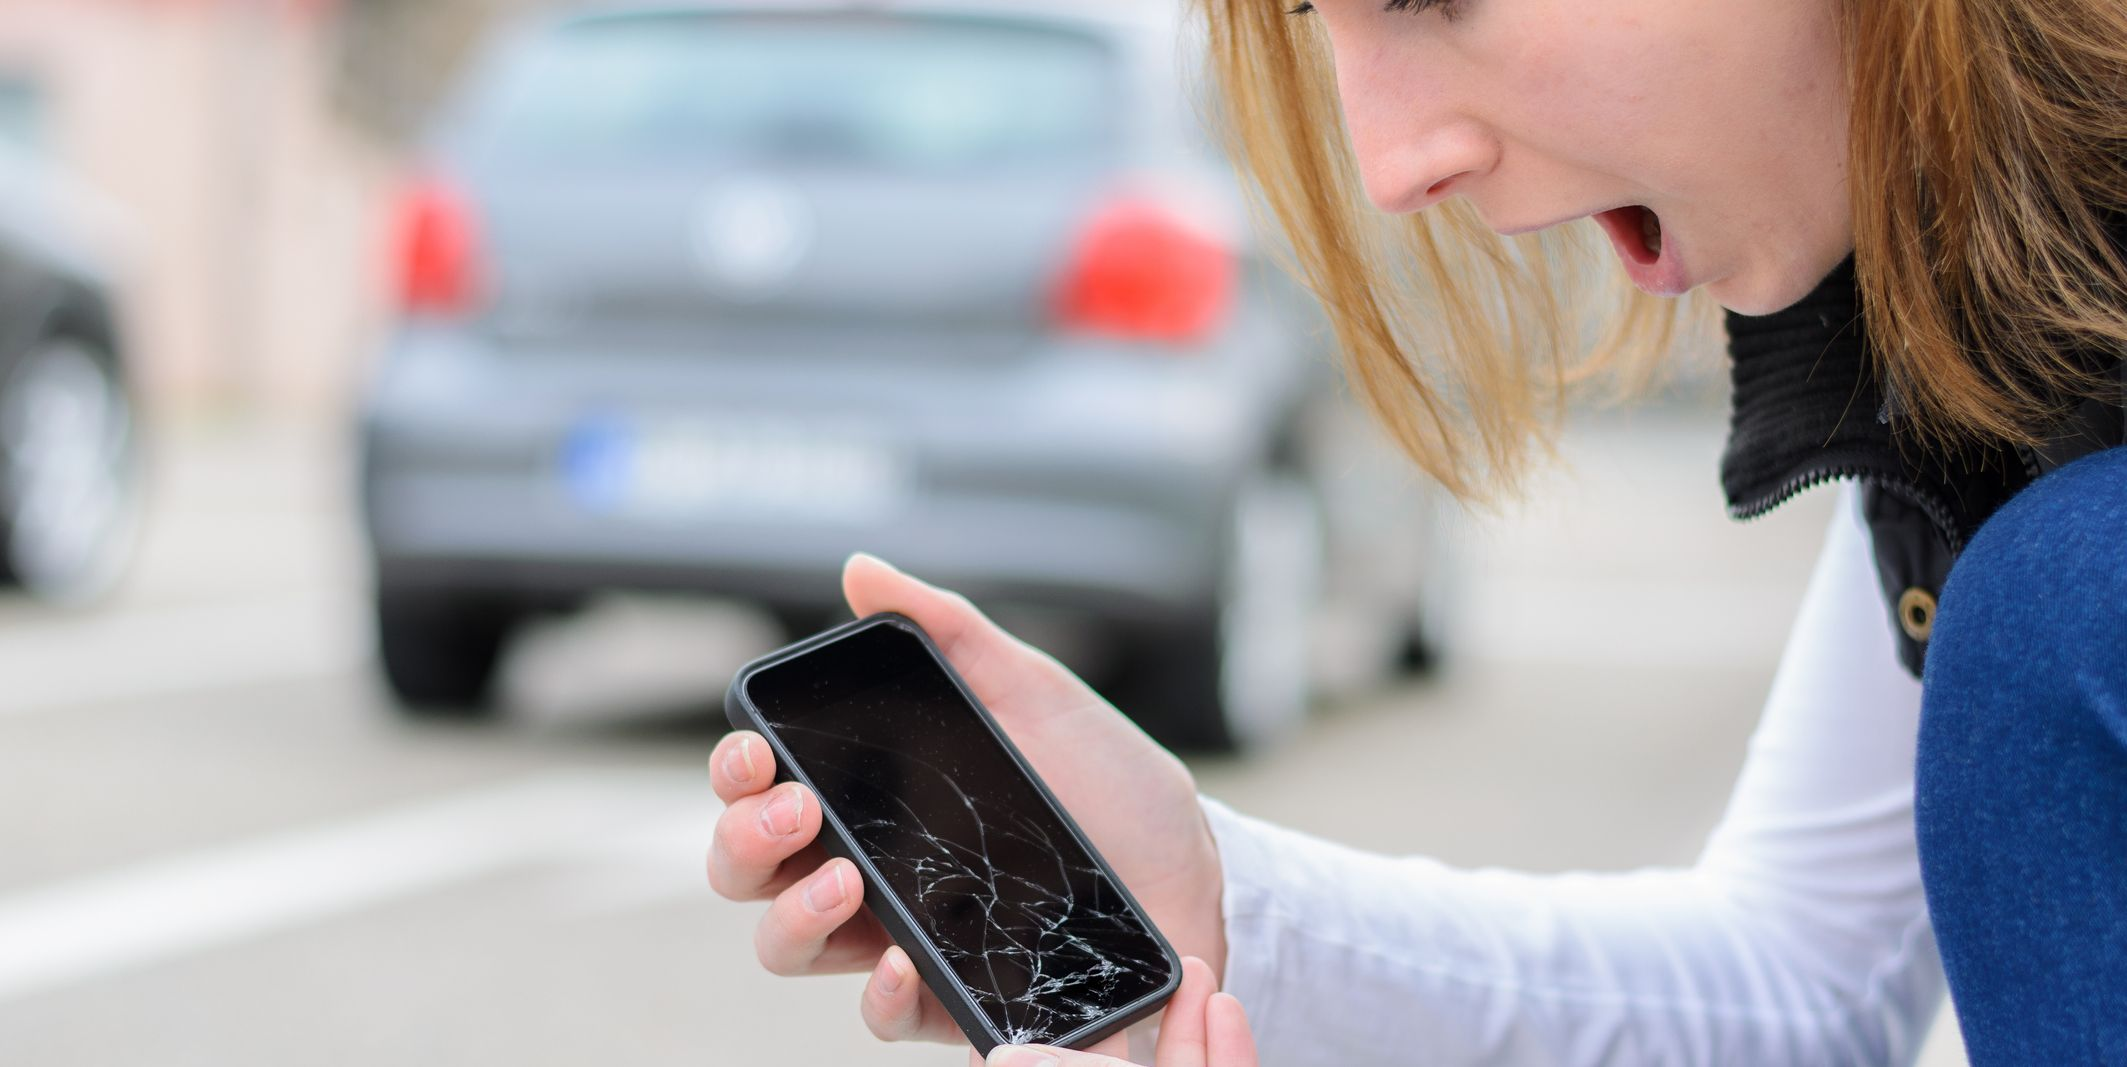 Shocked Woman Holding Mobile Phone with Broken Display